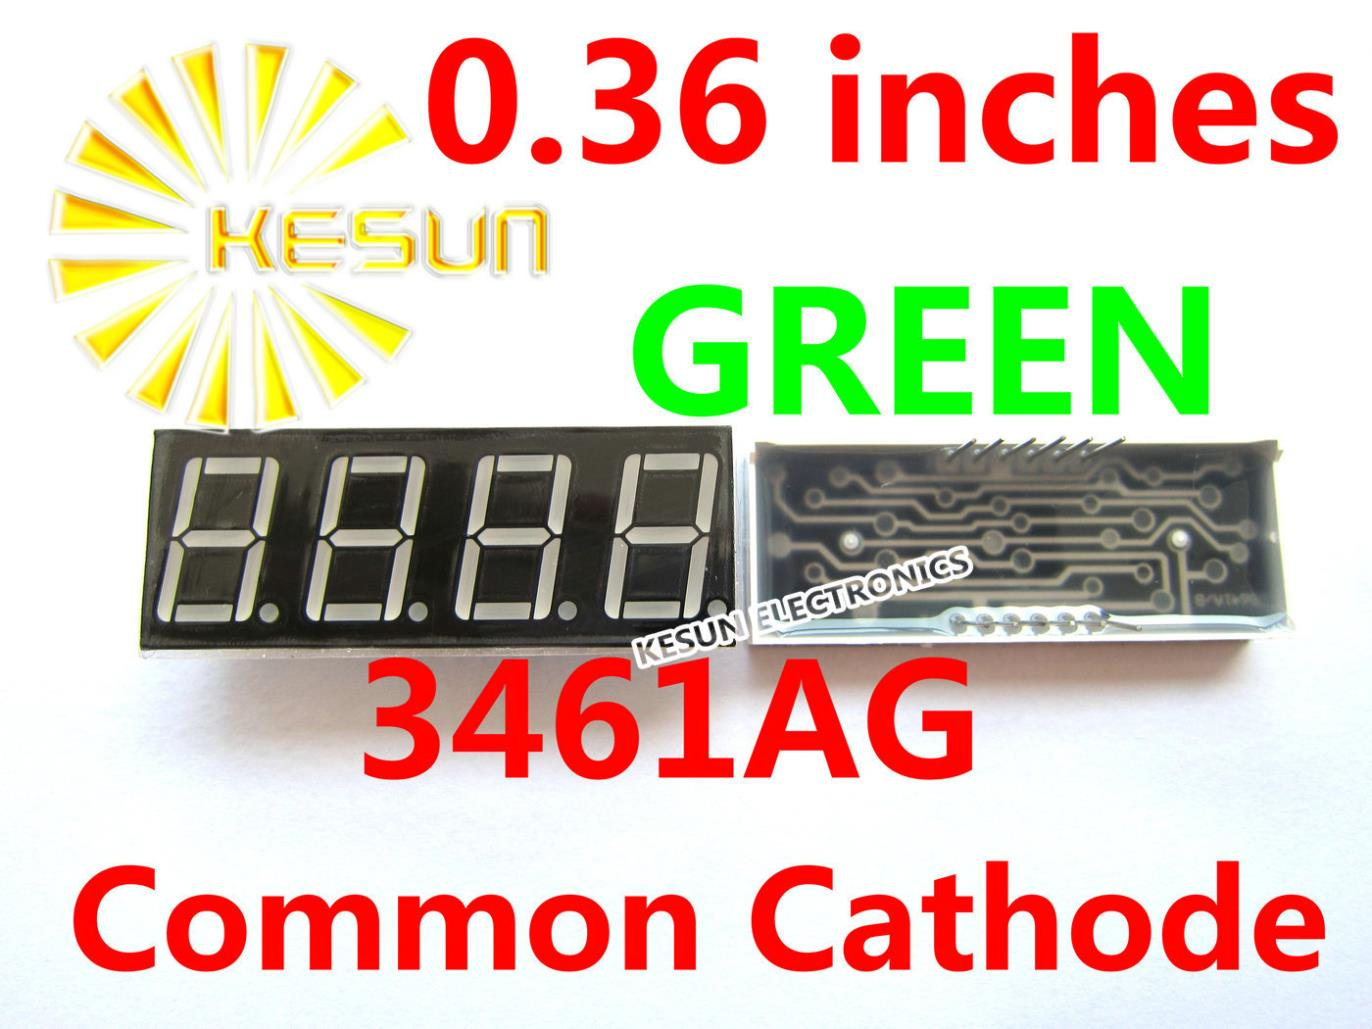 5PCS x 0.36 inches Green Red Common Cathode/Anode 4 Digital Tube 3461AG 3461BG 3461AS 3461BS LED Display Module